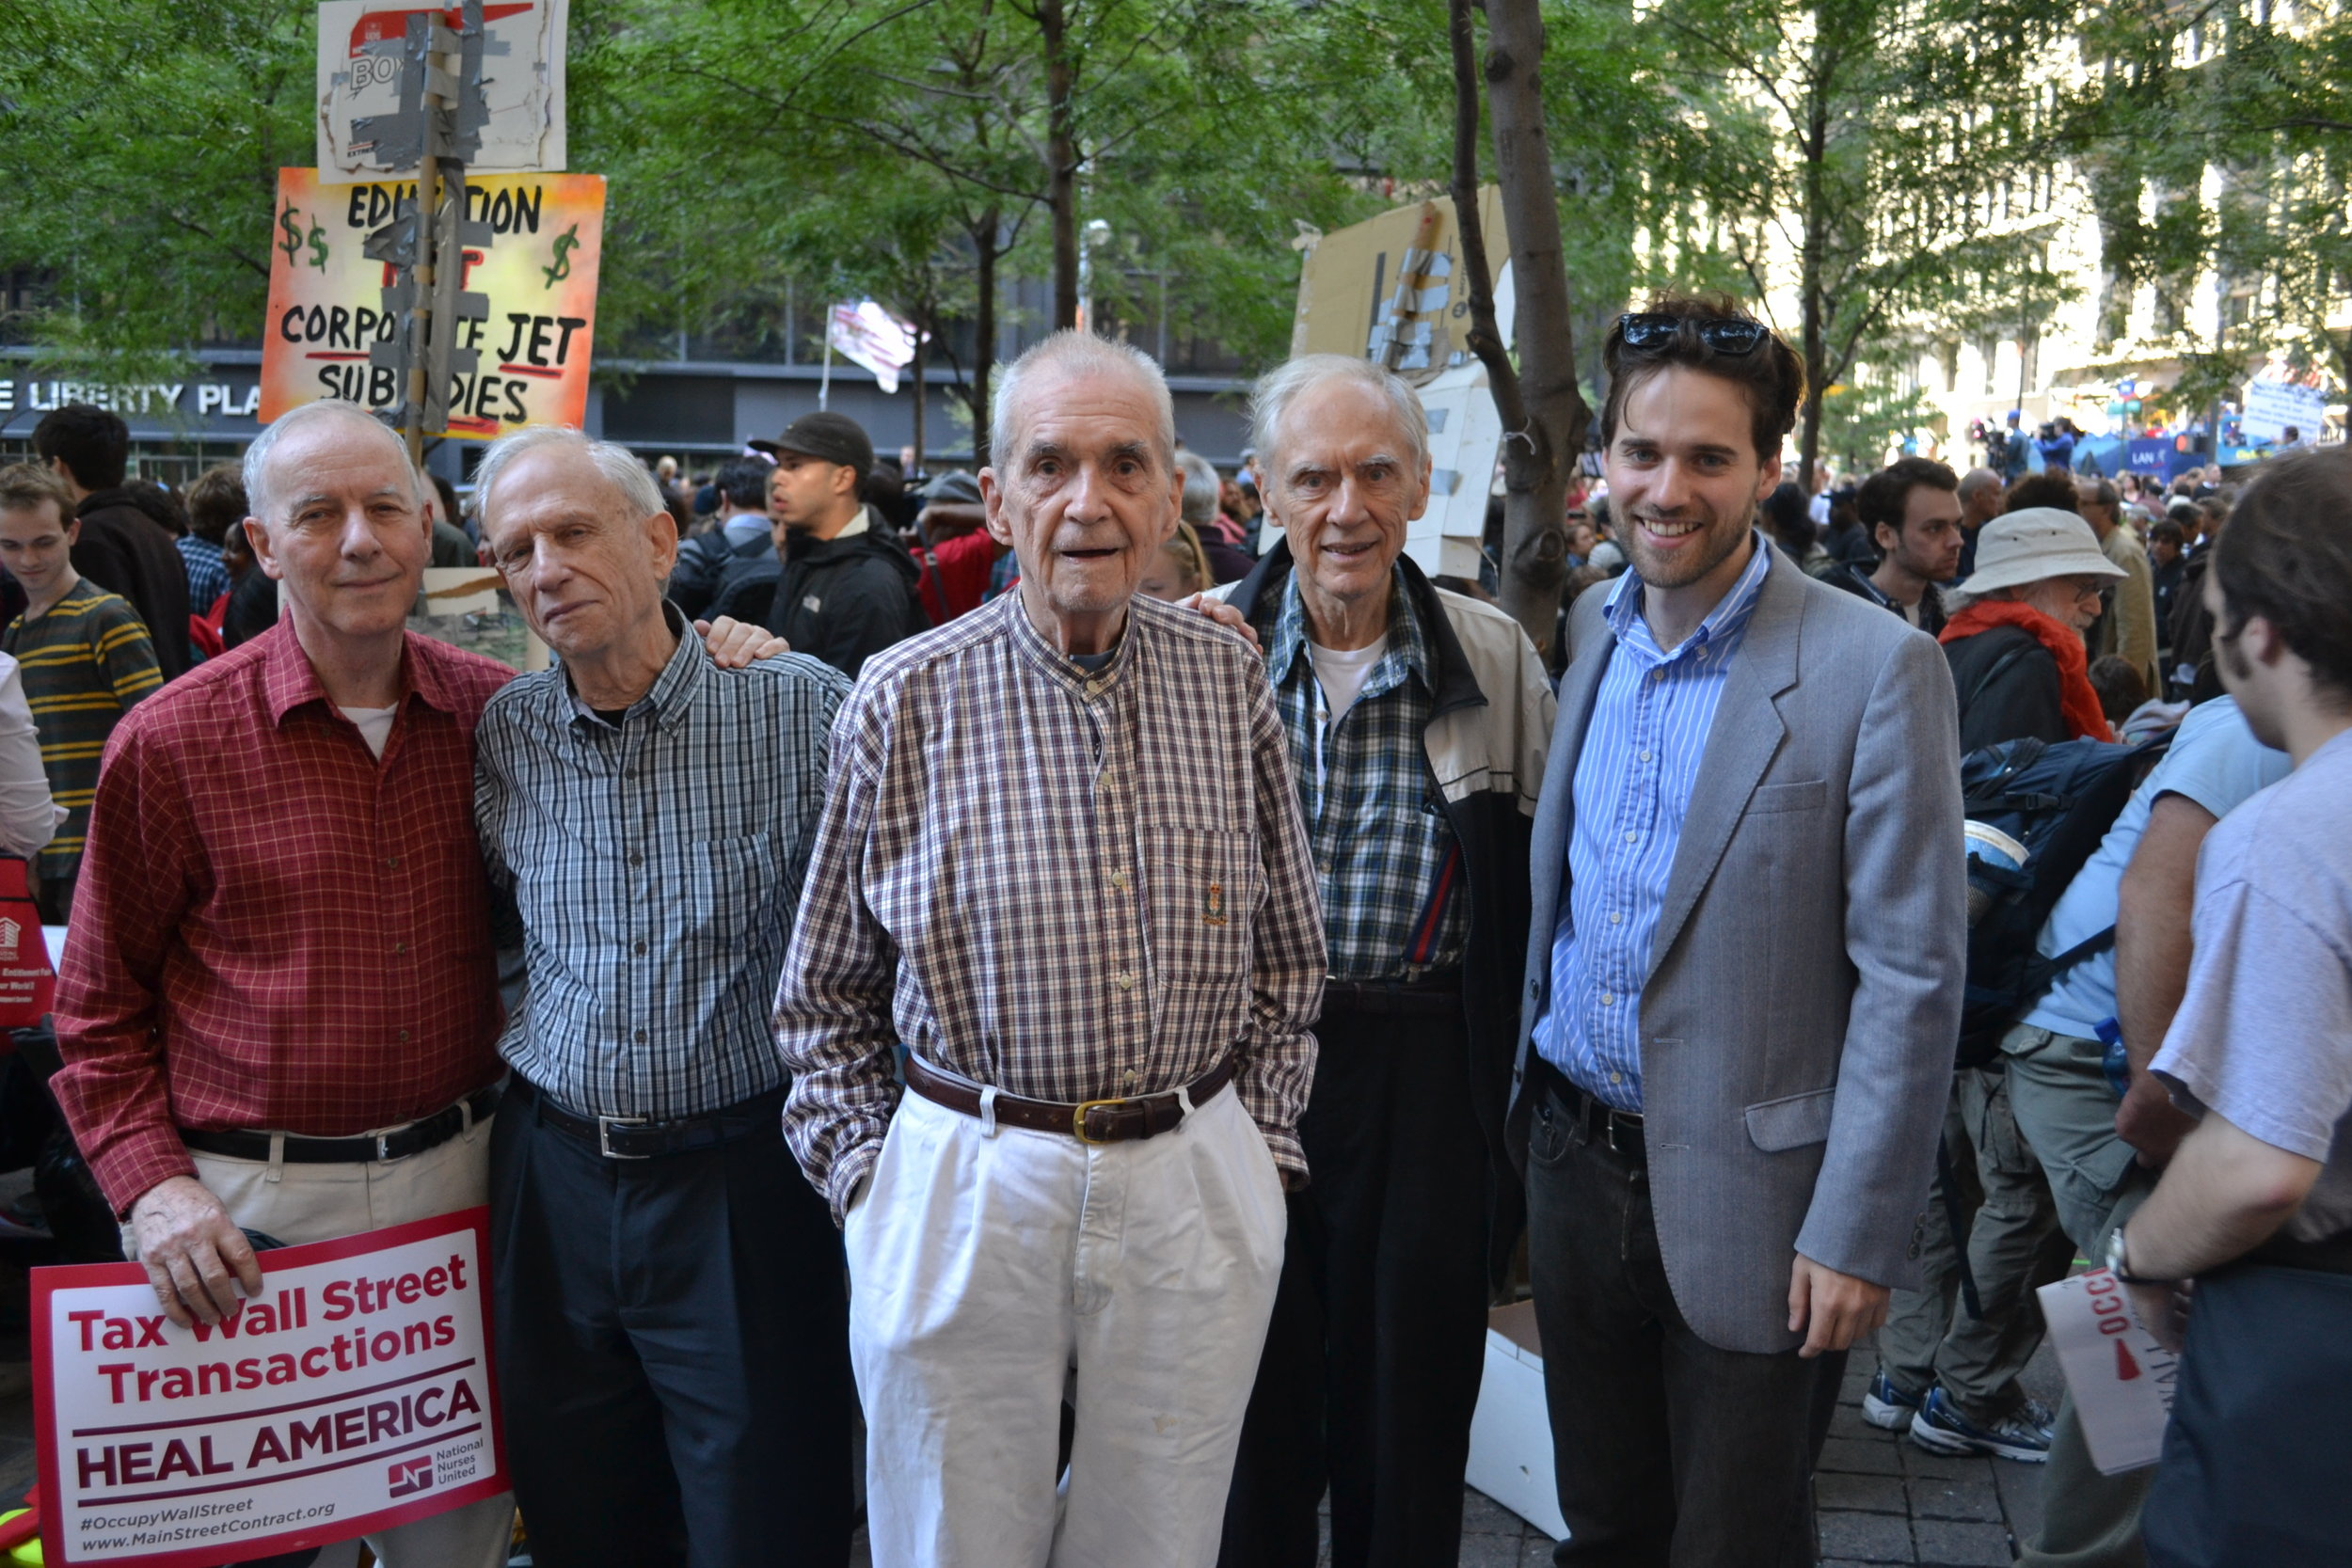 Nathan (right) with activist priests during Occupy Wall Street